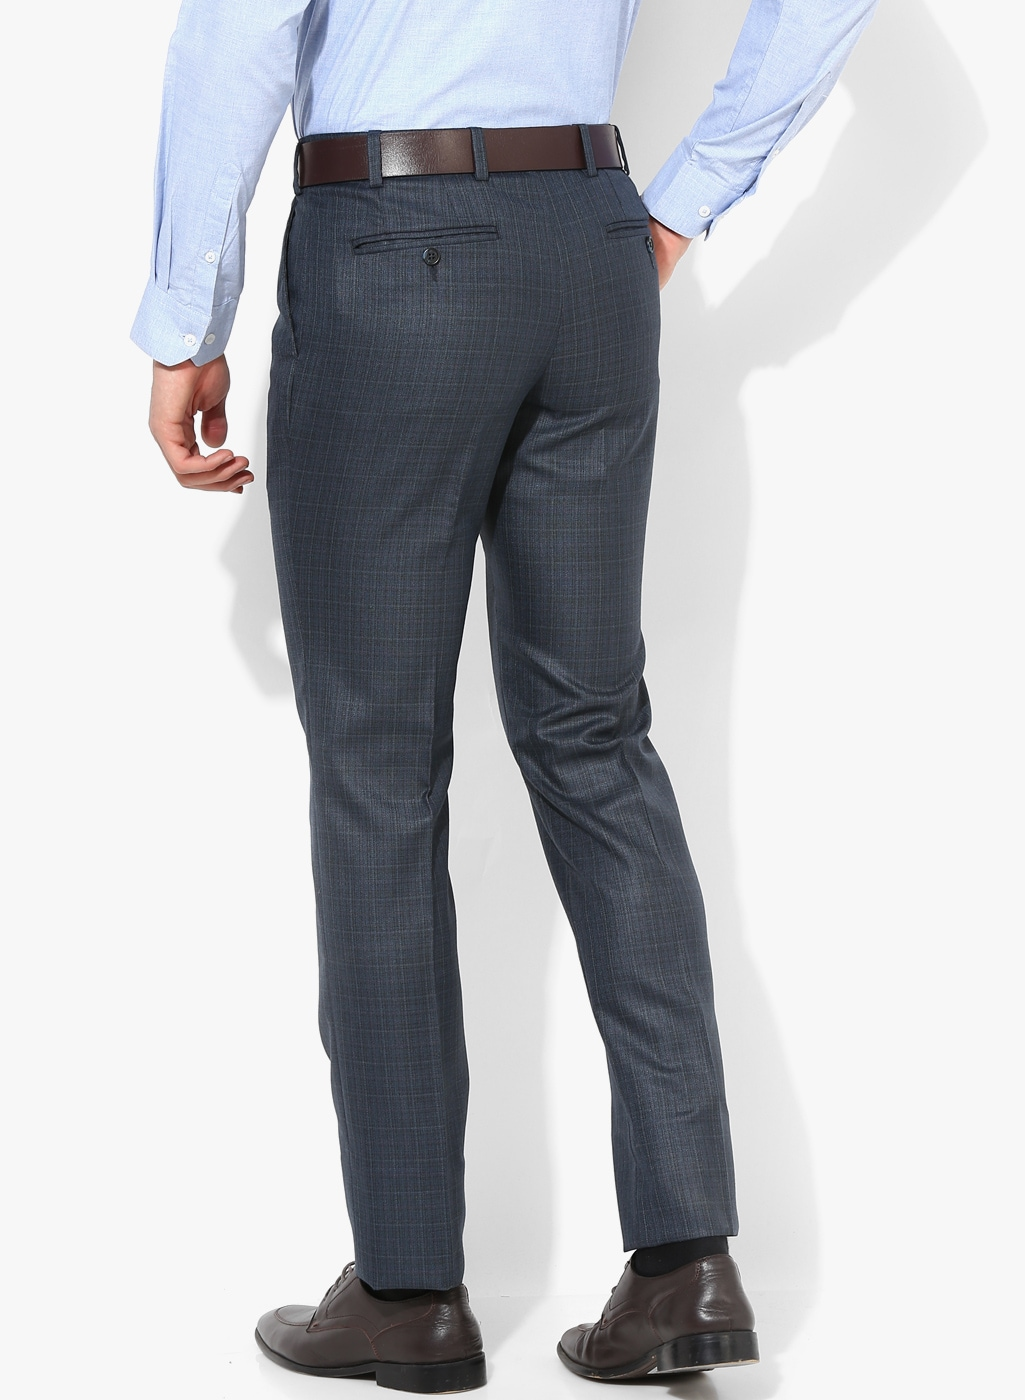 4c796735d93 Men Trousers Formal Trousers - Buy Men Trousers Formal Trousers online in  India - Jabong